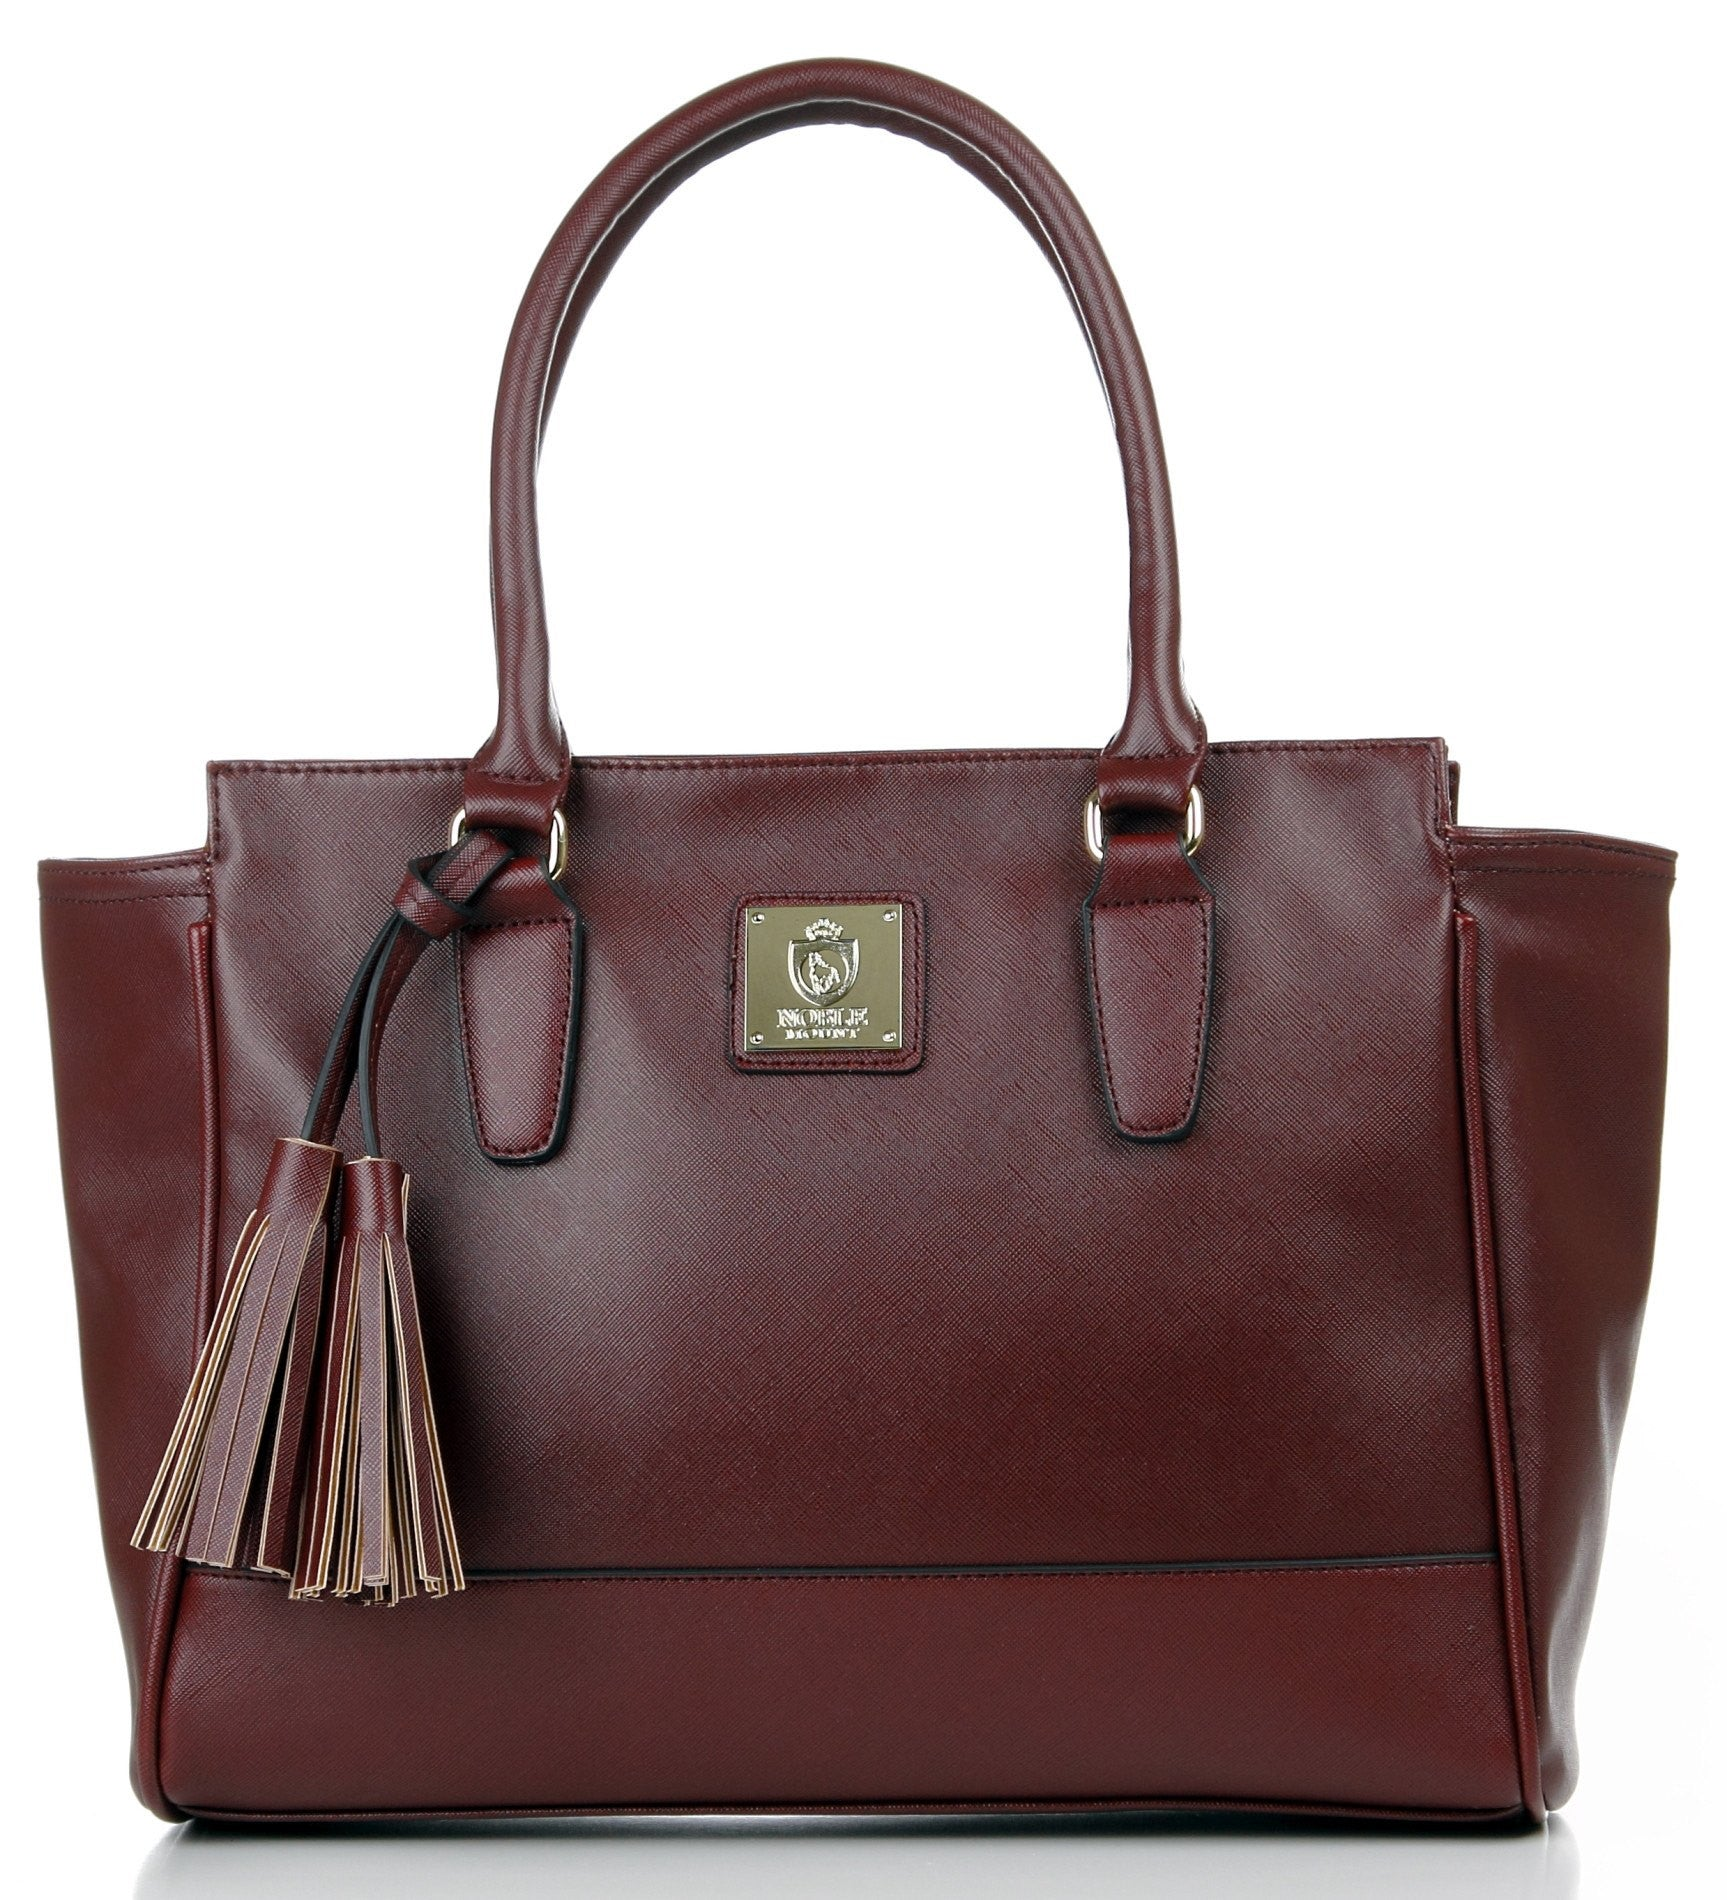 Juliette Satchel/Handbag